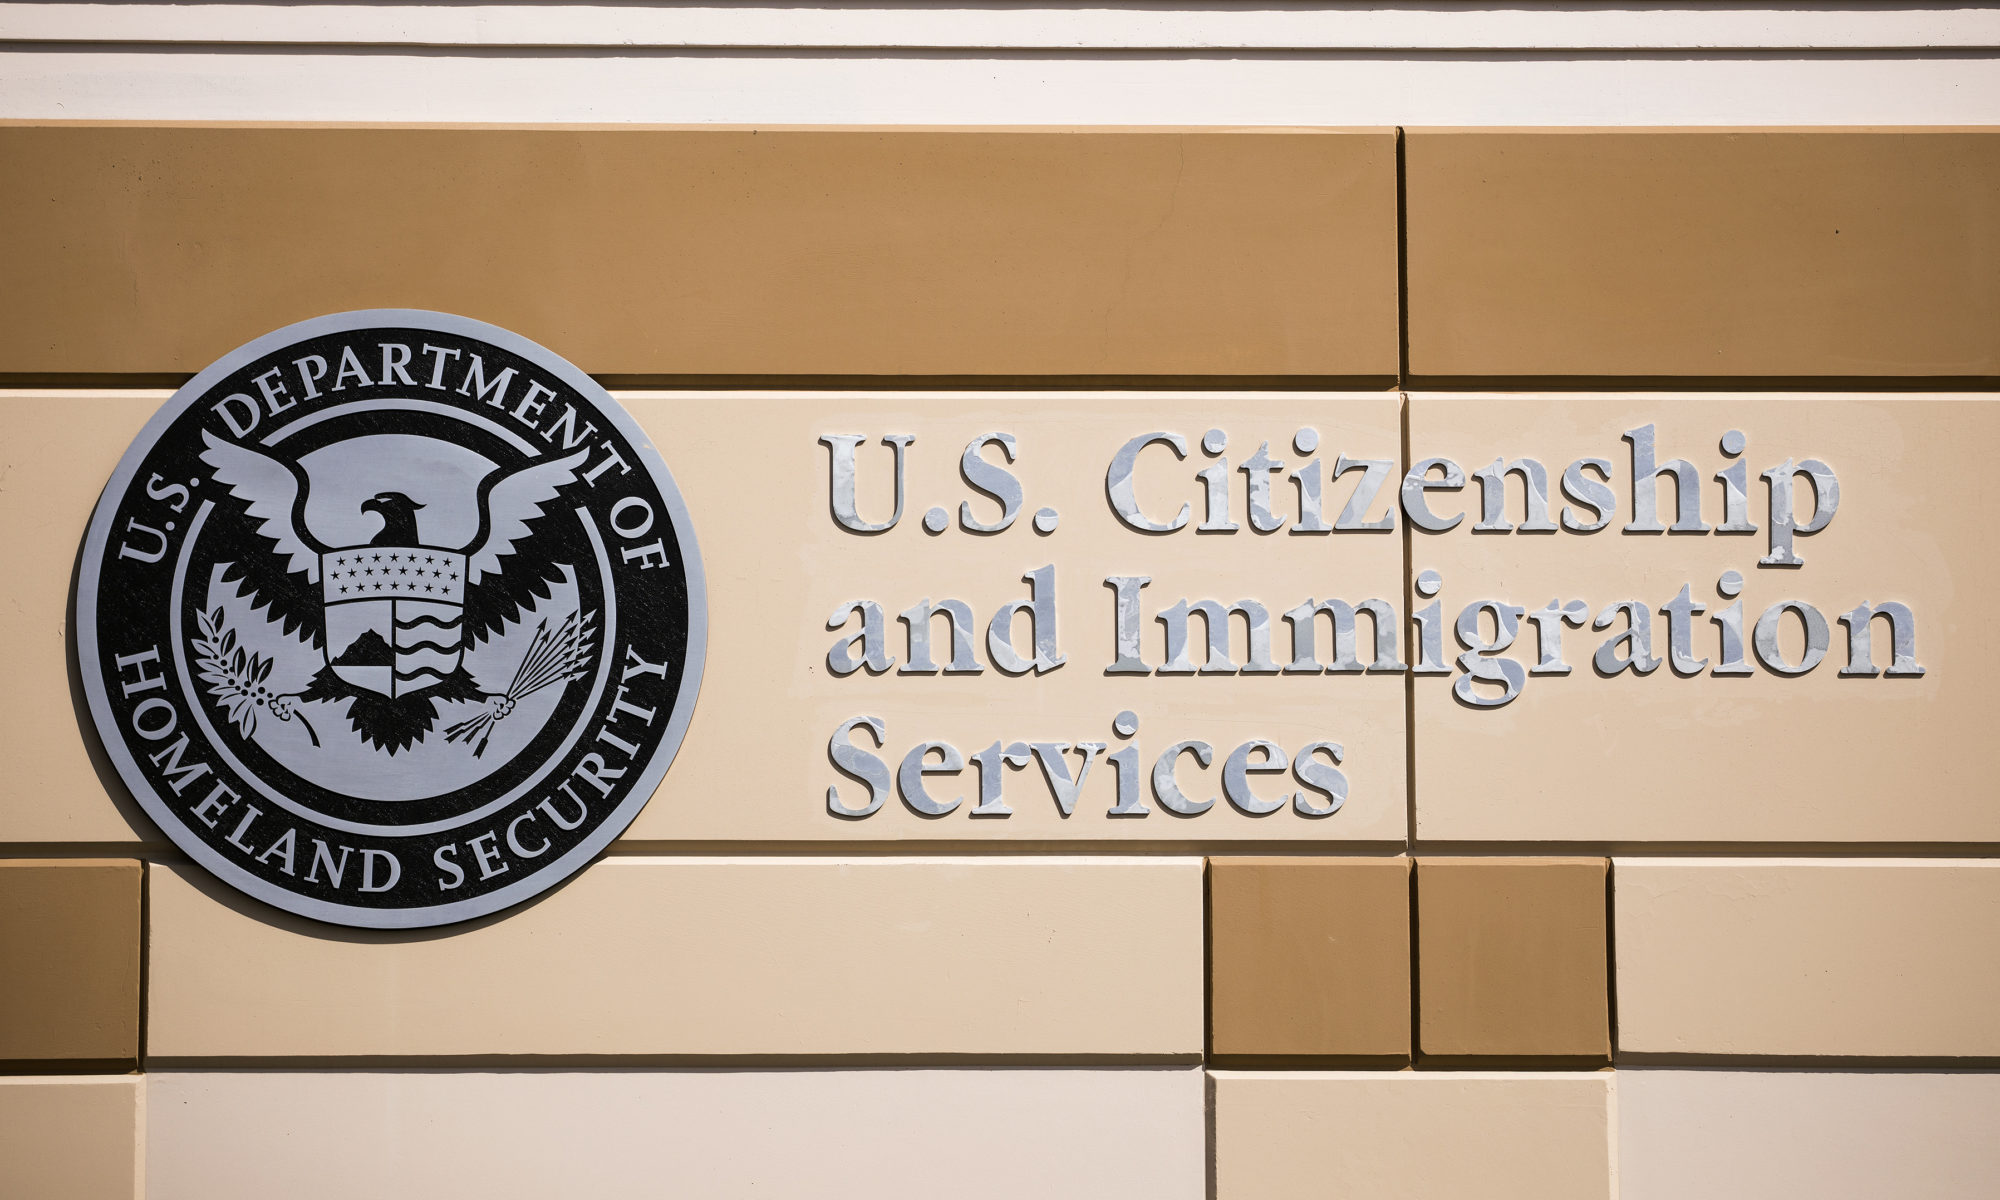 The U.S. Citizenship and Immigration Services building in Las Vegas